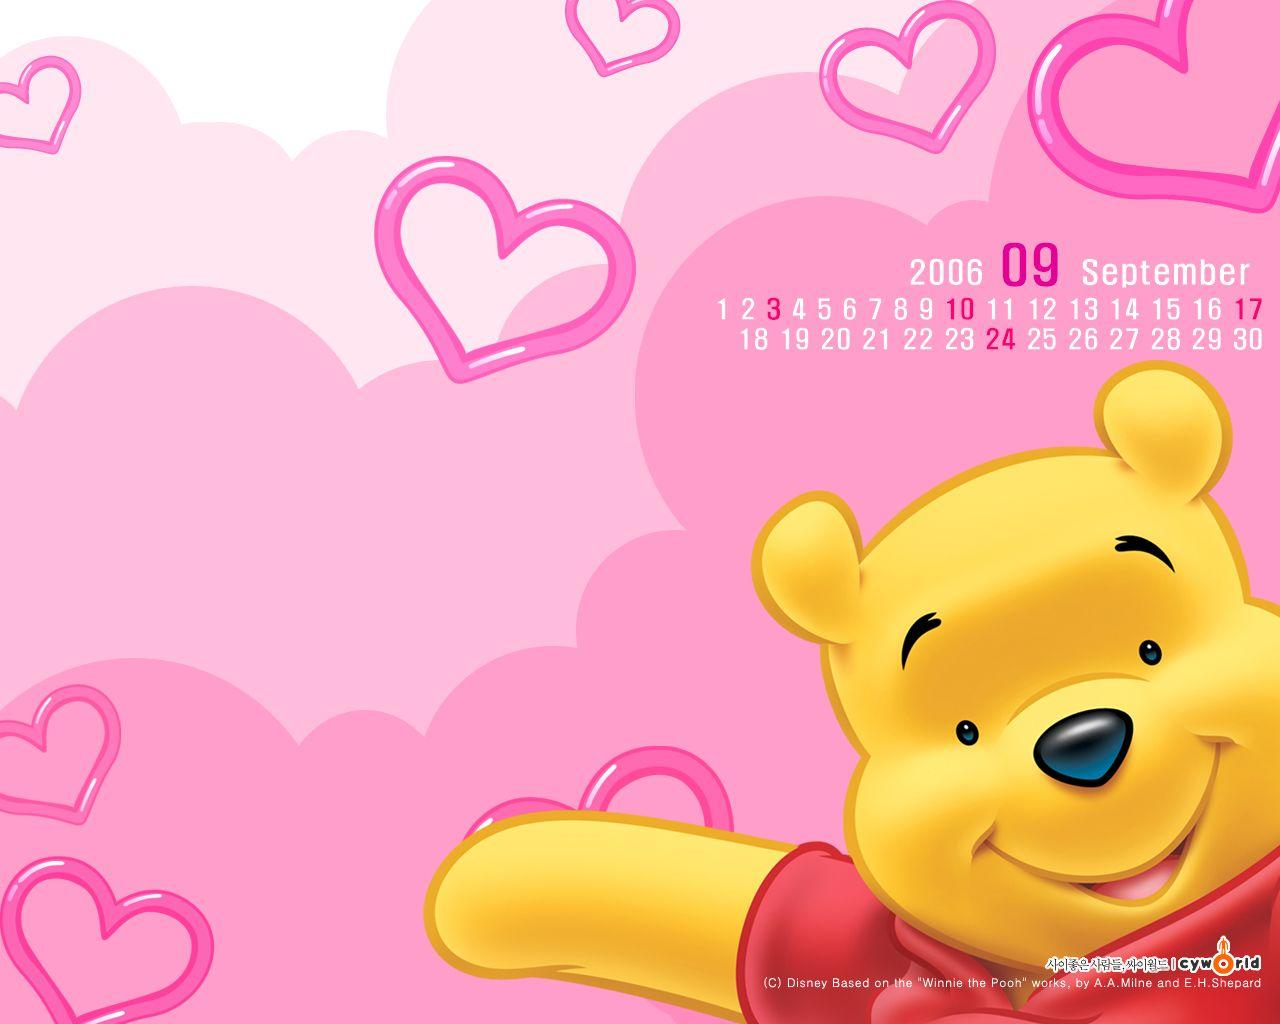 Winnie the Pooh Wallpaper HD Android | Cartoons Images